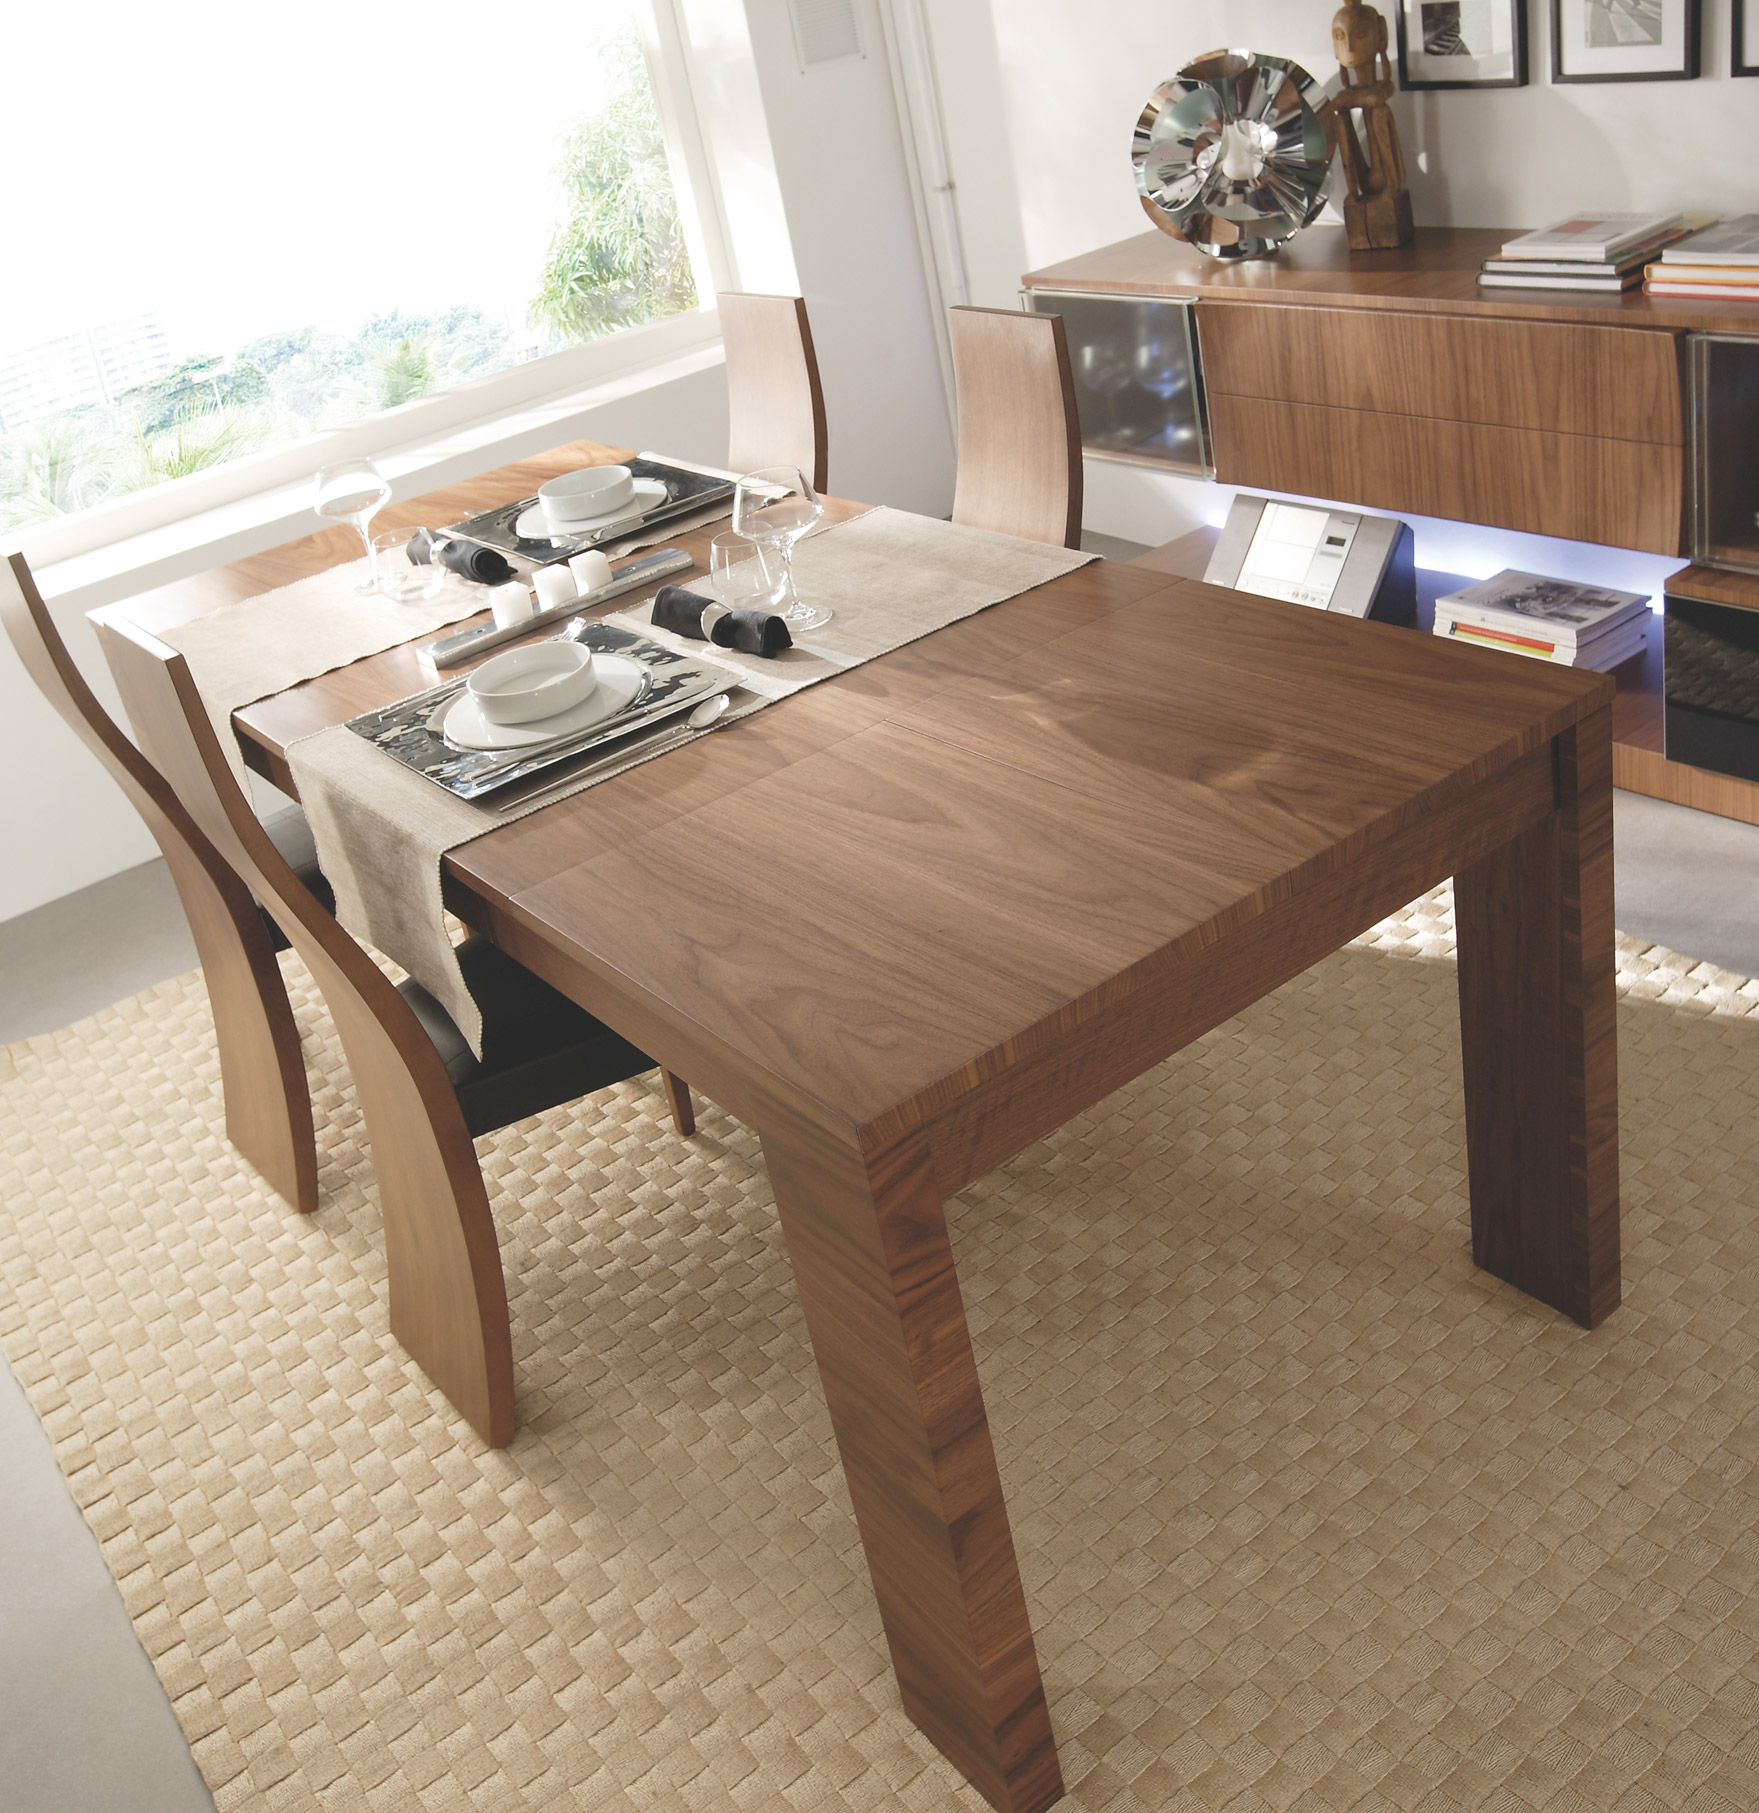 Mesa navide a muebles gasc n el blog - Color nogal americano ...